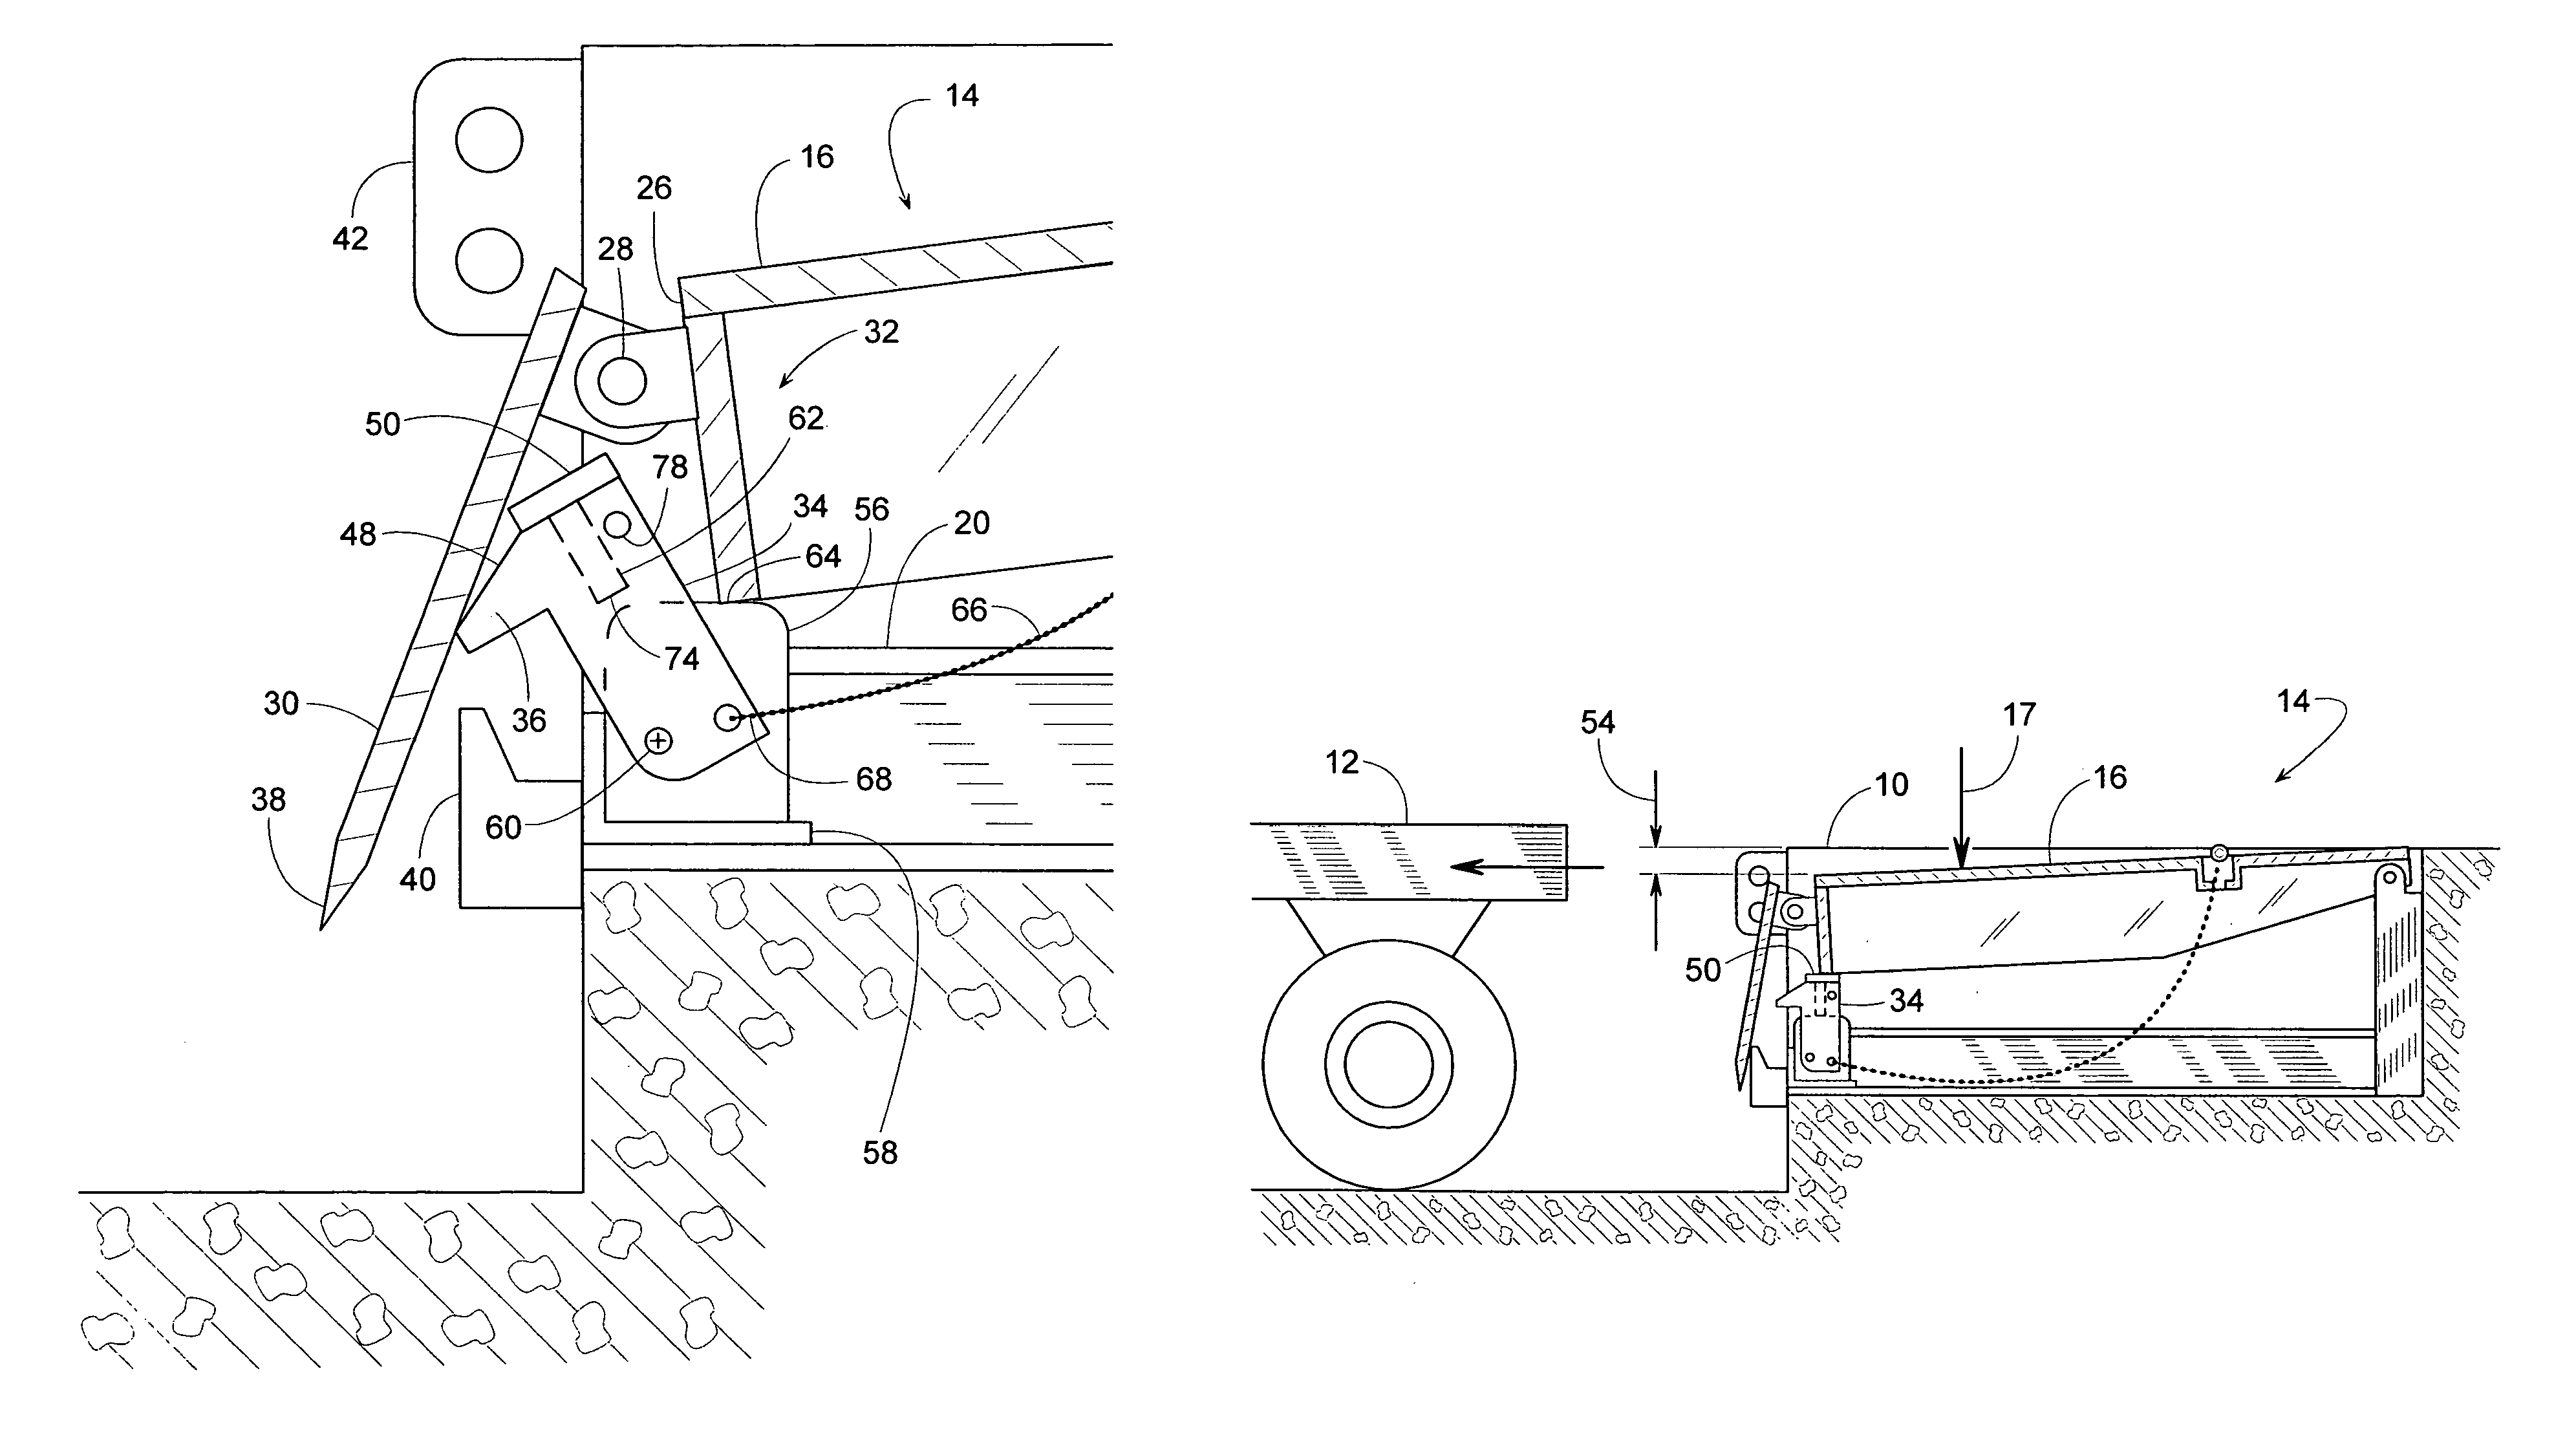 Patent Us7032267 - Dock Leveler With Combination Safety Leg And Lip Deflector